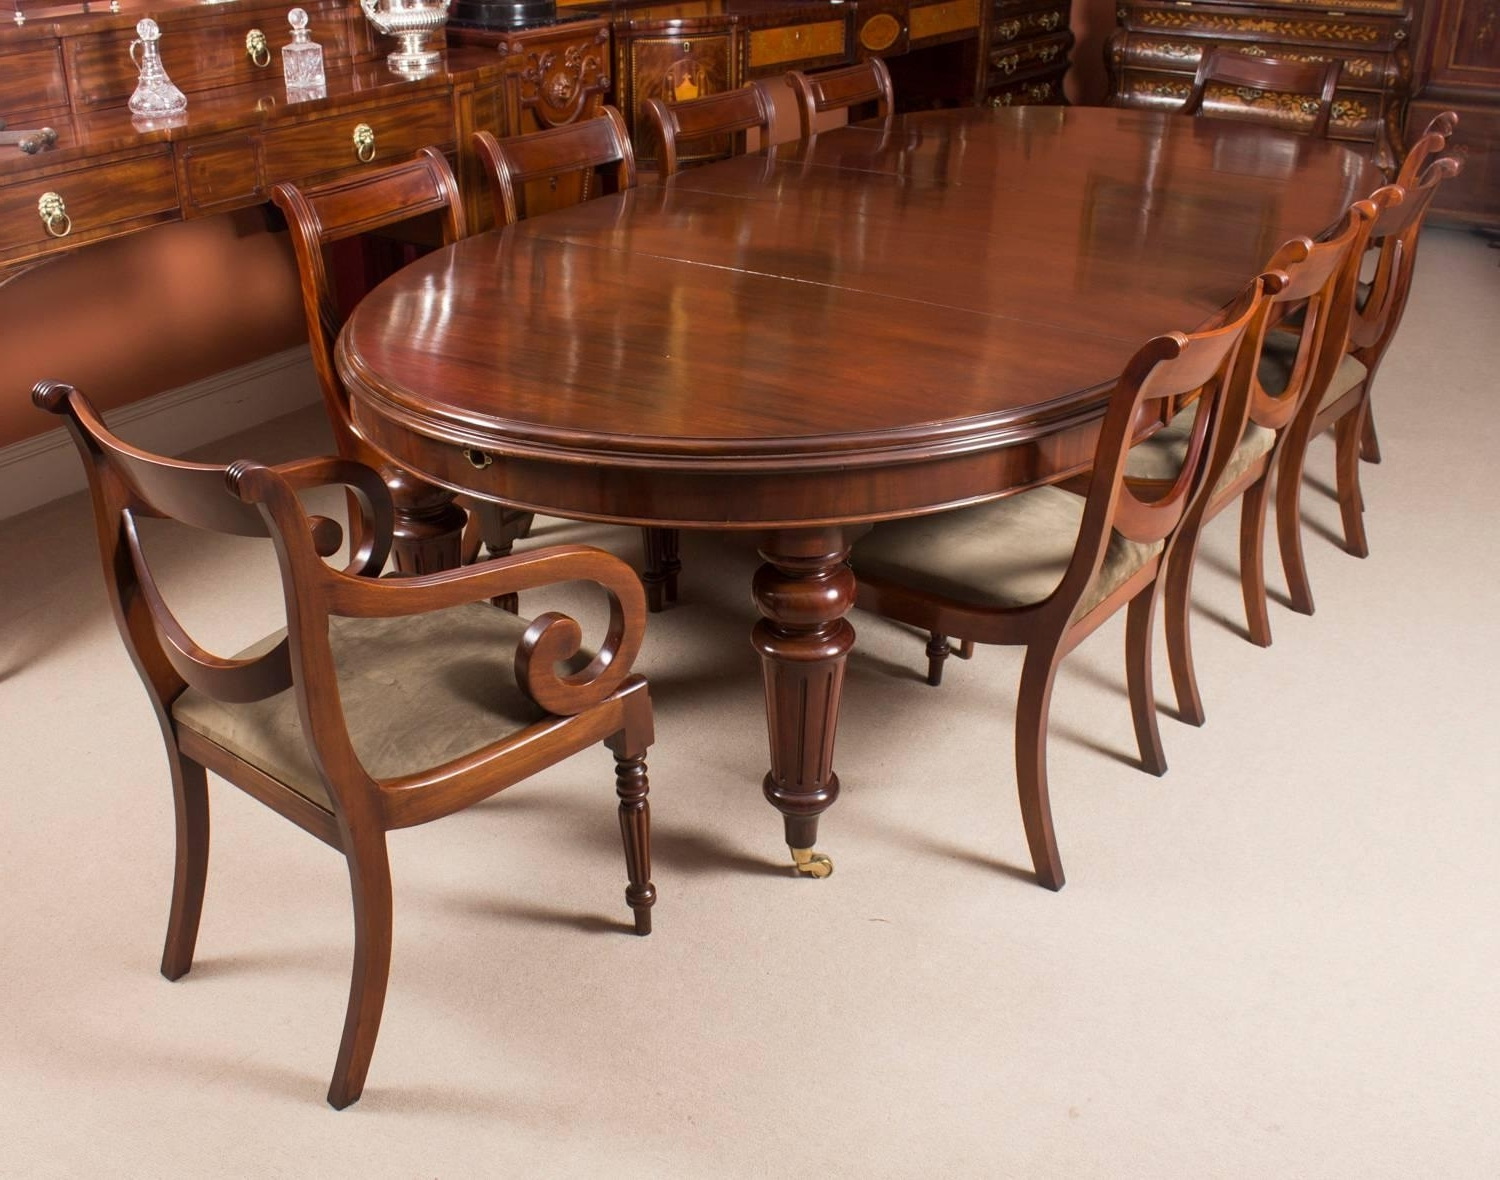 Fashionable Mahogany Extending Dining Tables And Chairs With Antique Victorian Oval Flame Mahogany Extending Dining Table, 19Th (View 5 of 25)